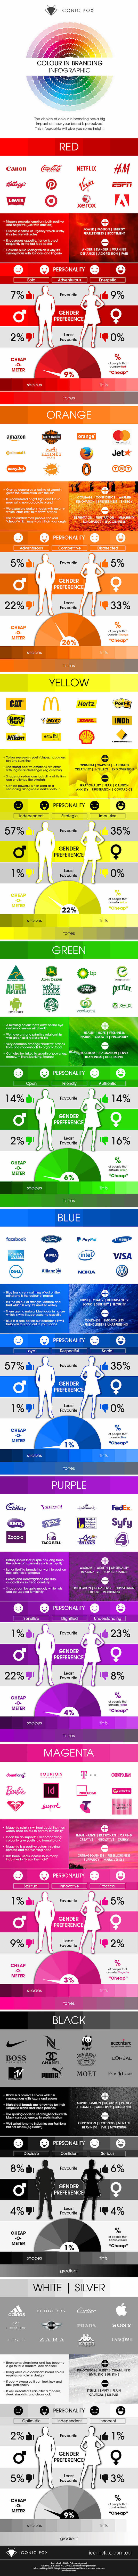 Color Psychology in Marketing [Infographic] iconic fox colour in branding infographic 2